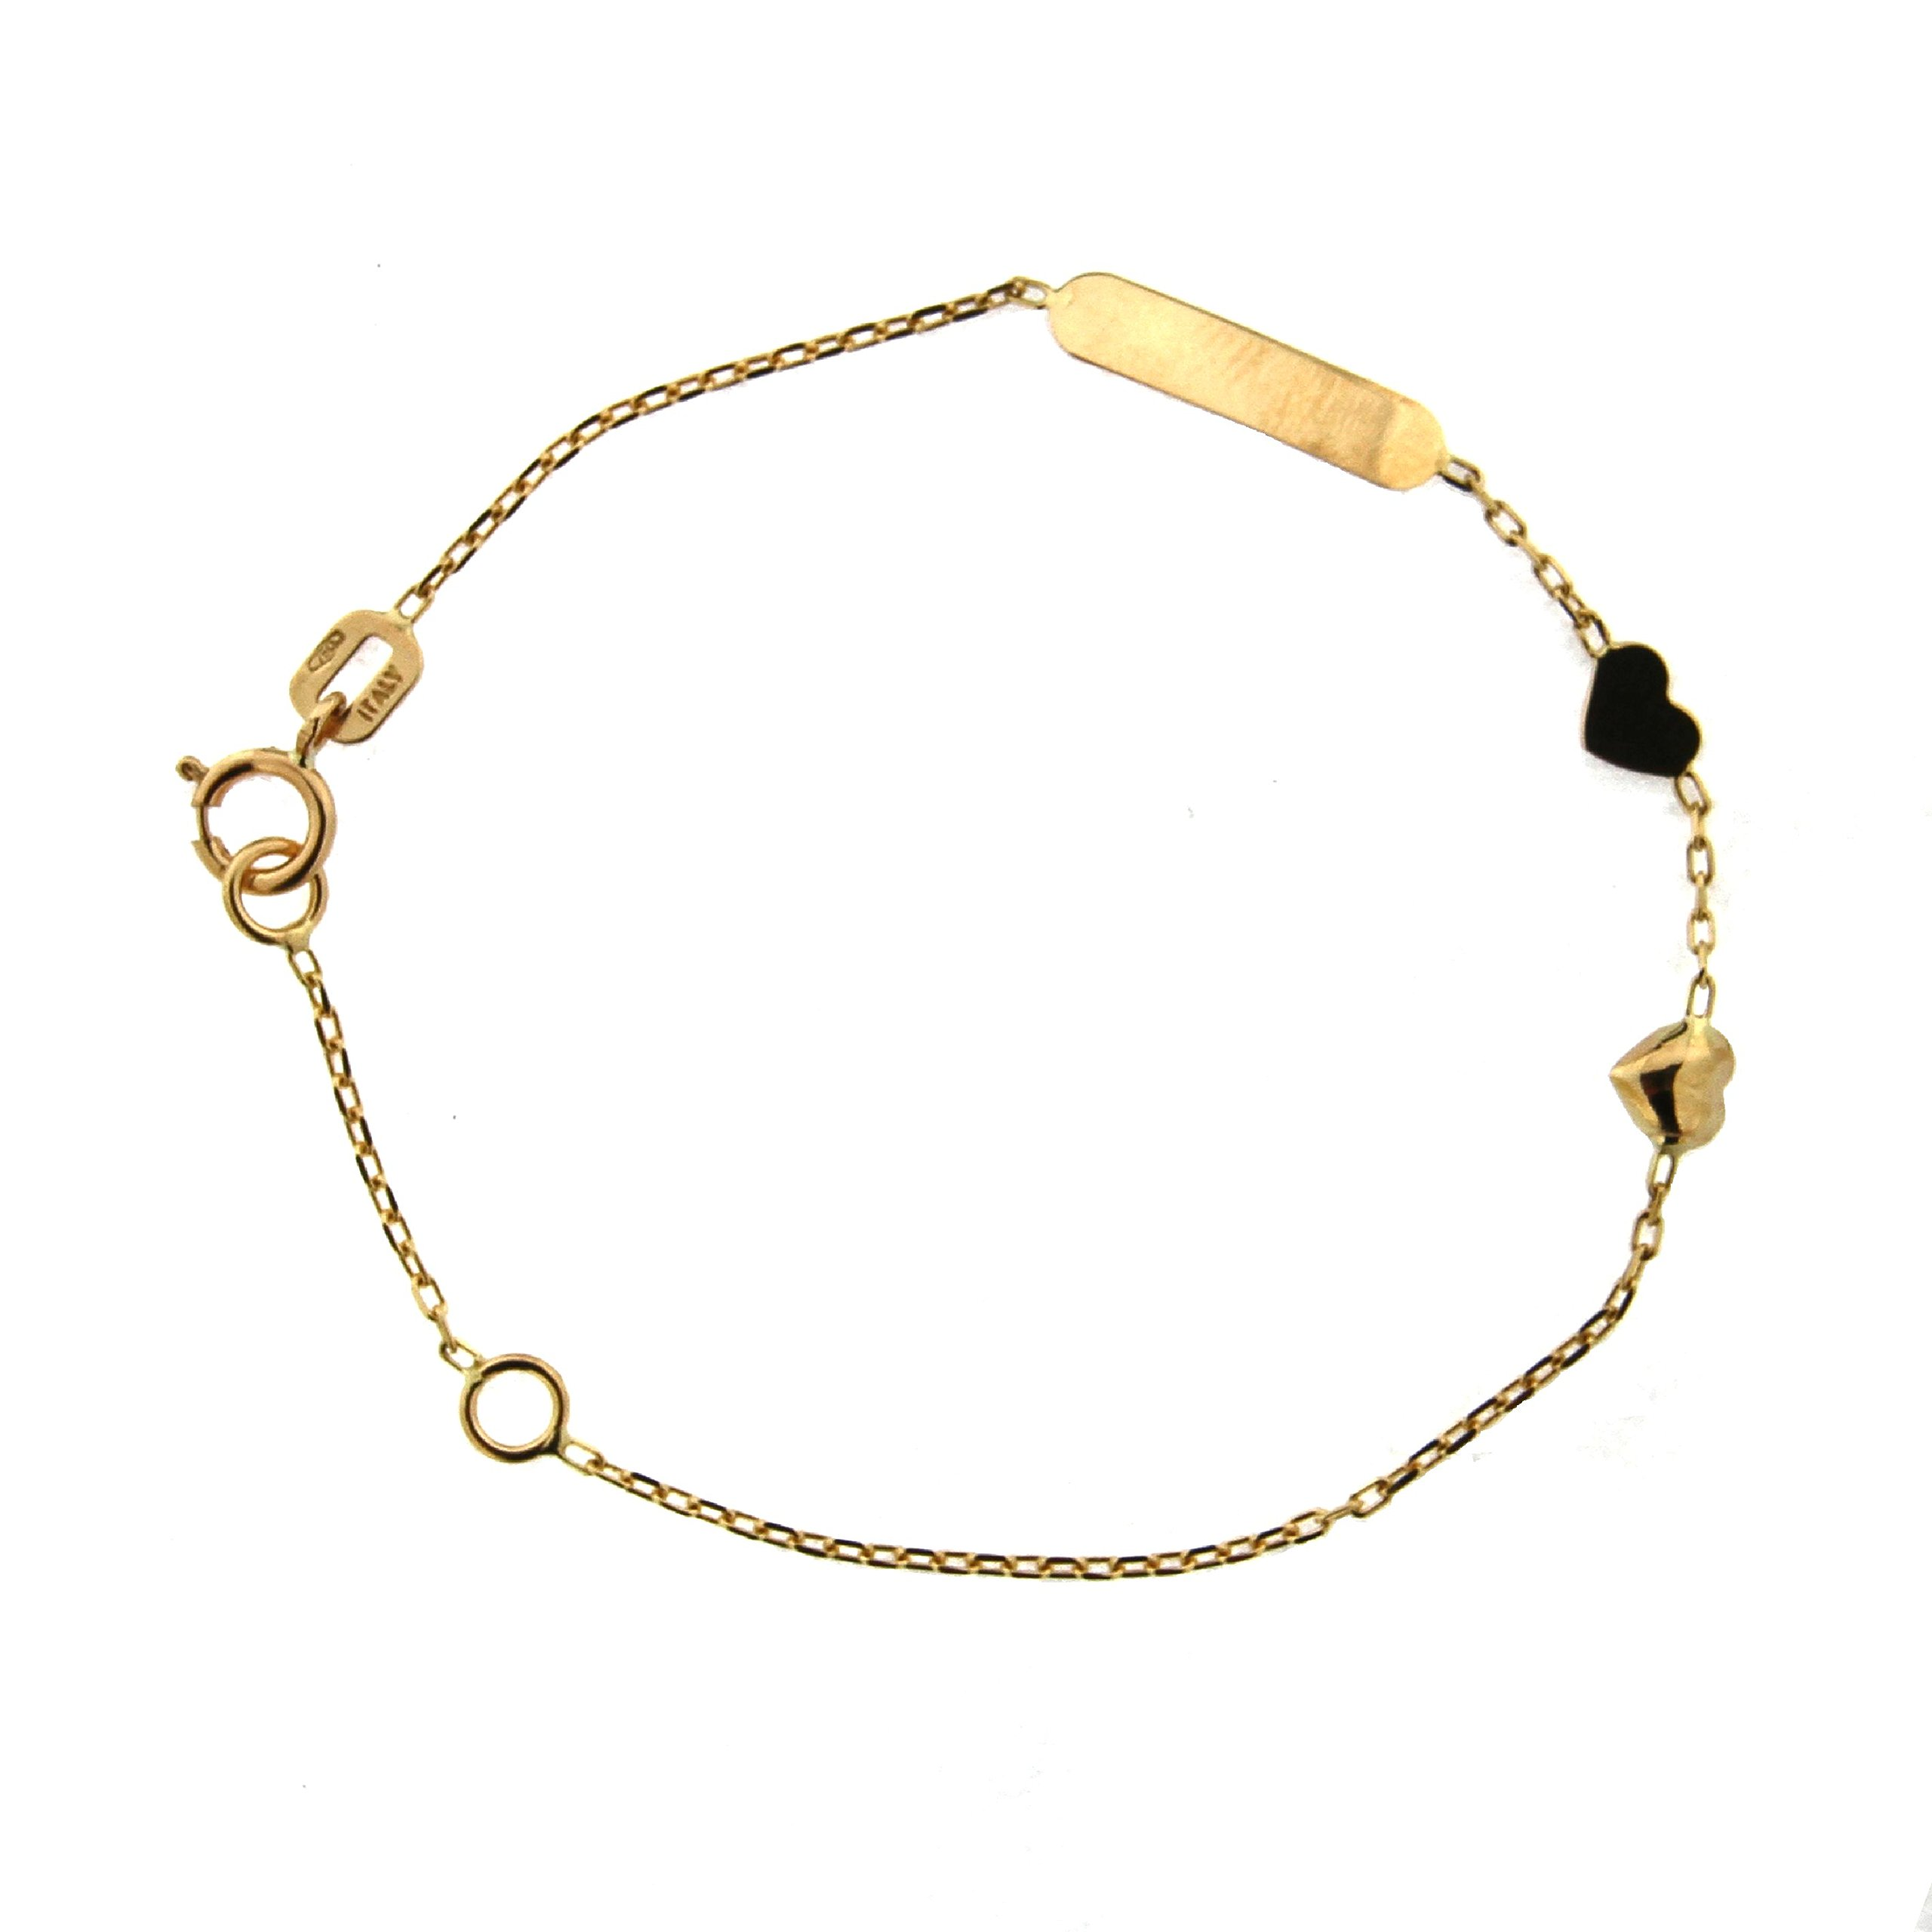 18K Yellow Gold Flat and Puffy Hearts Id Bracelet 5.60 inches with extra rin in 4.9 inch